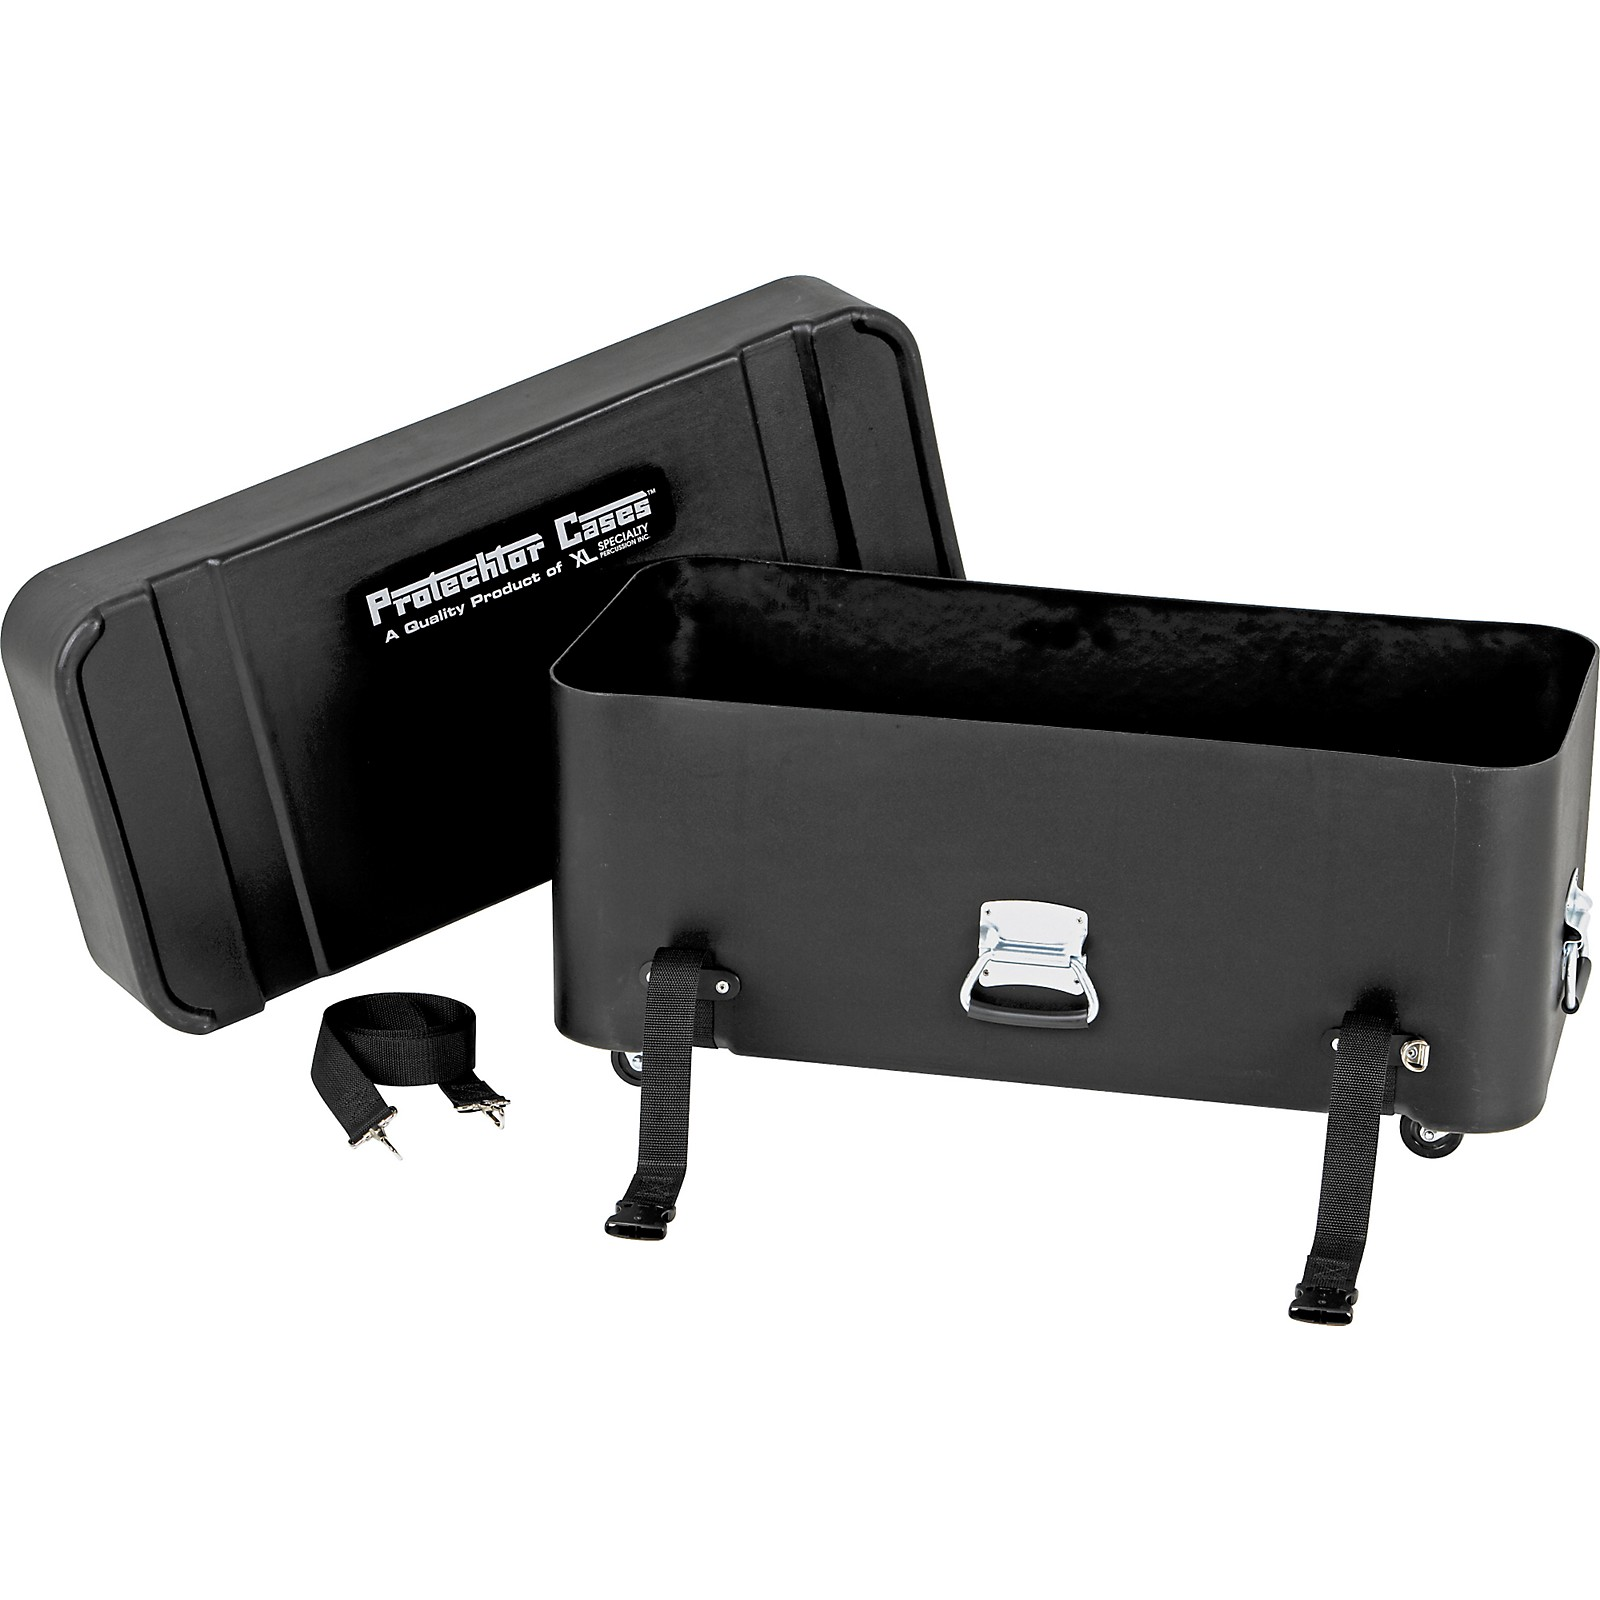 Open Box Protechtor Cases Protechtor Super Compact Accessory Case